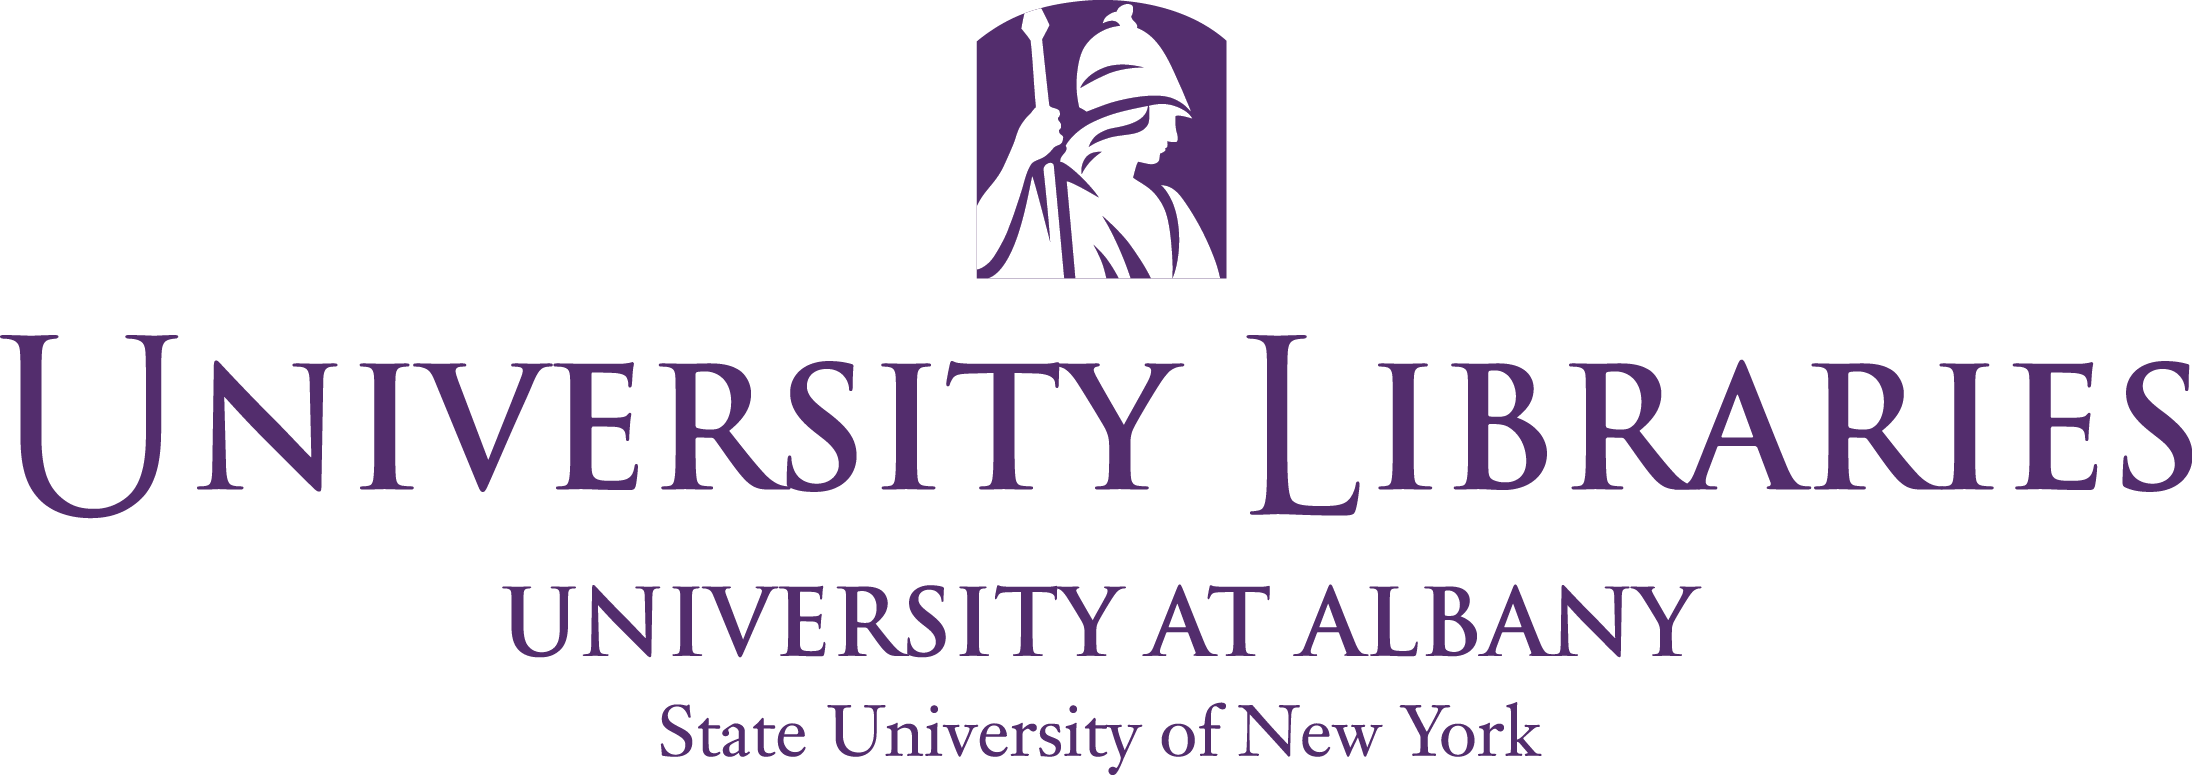 University Libraries - University at Albany - State University of New York